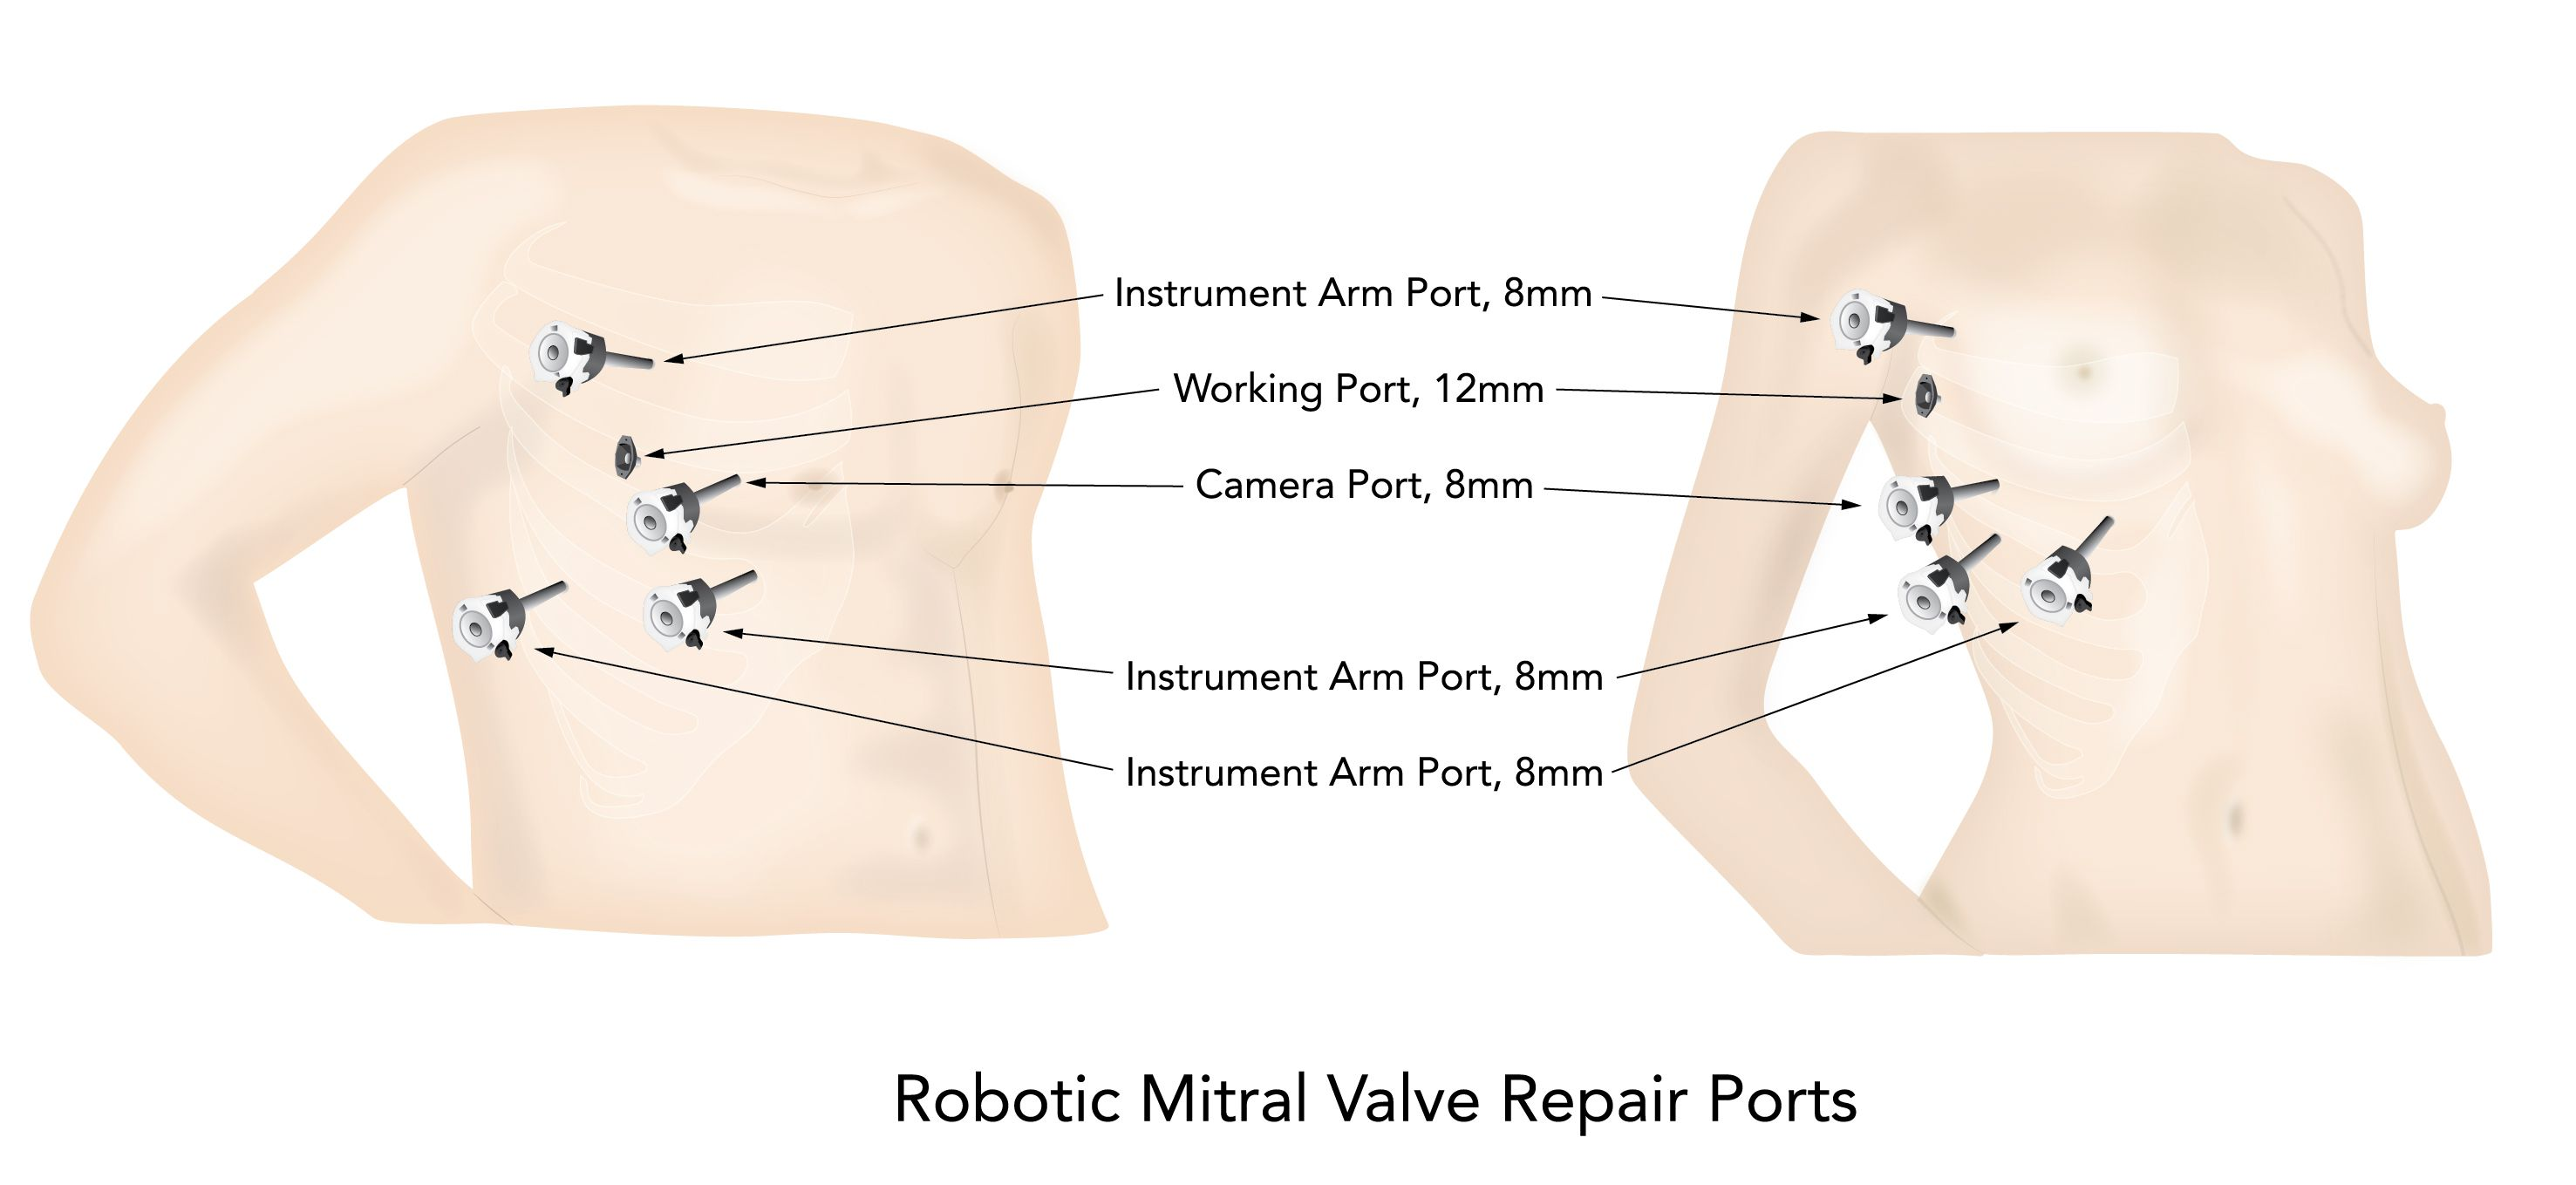 Totally Endoscopic Robotic Mitral Valve Repair